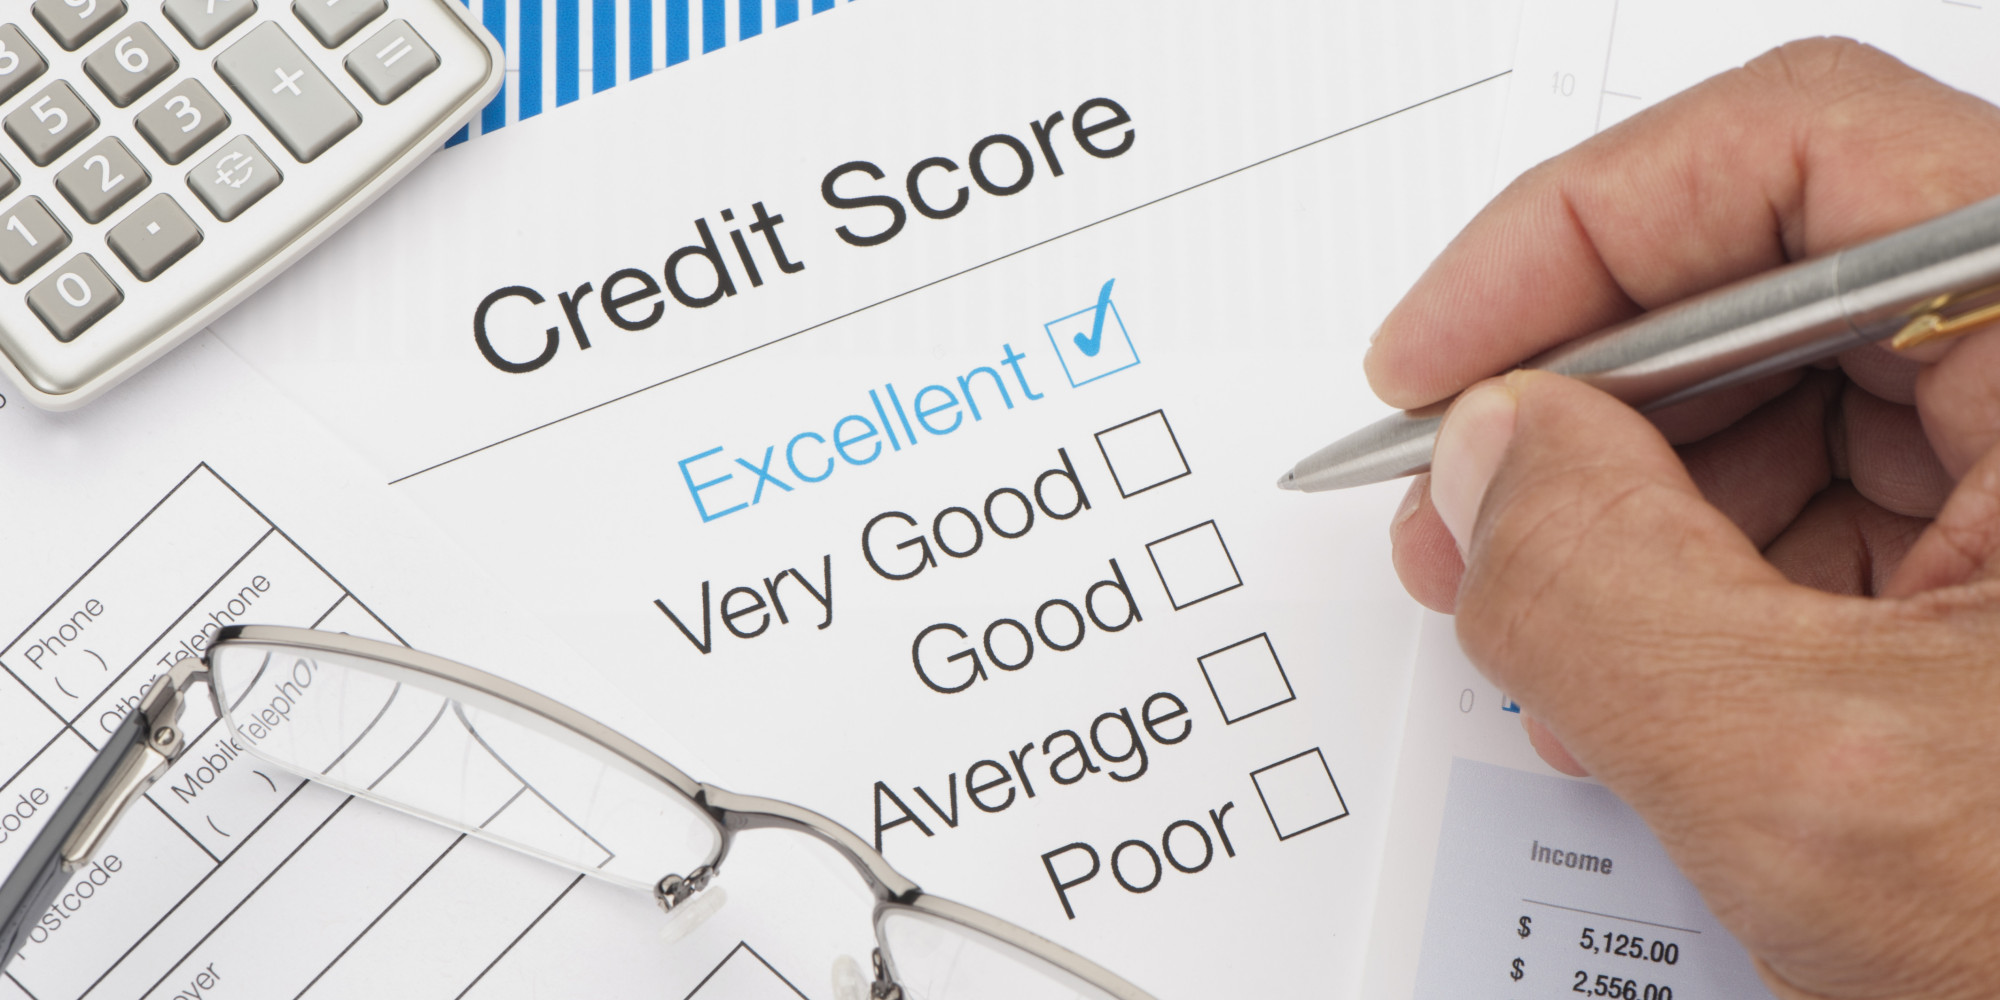 3 Steps on Conducting a Credit Check